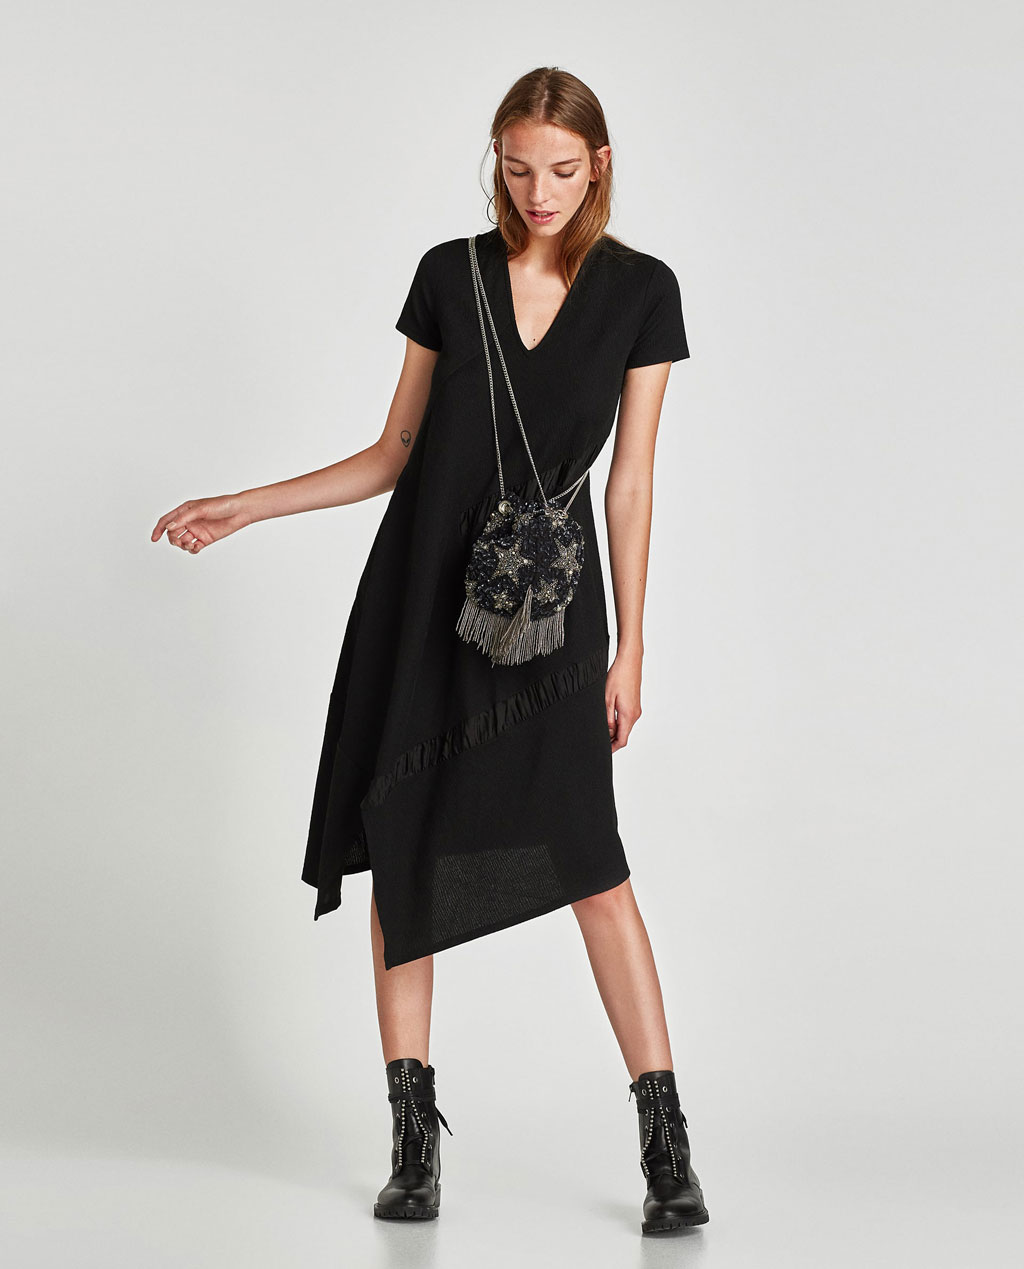 Zara cross body beaded bucket bag